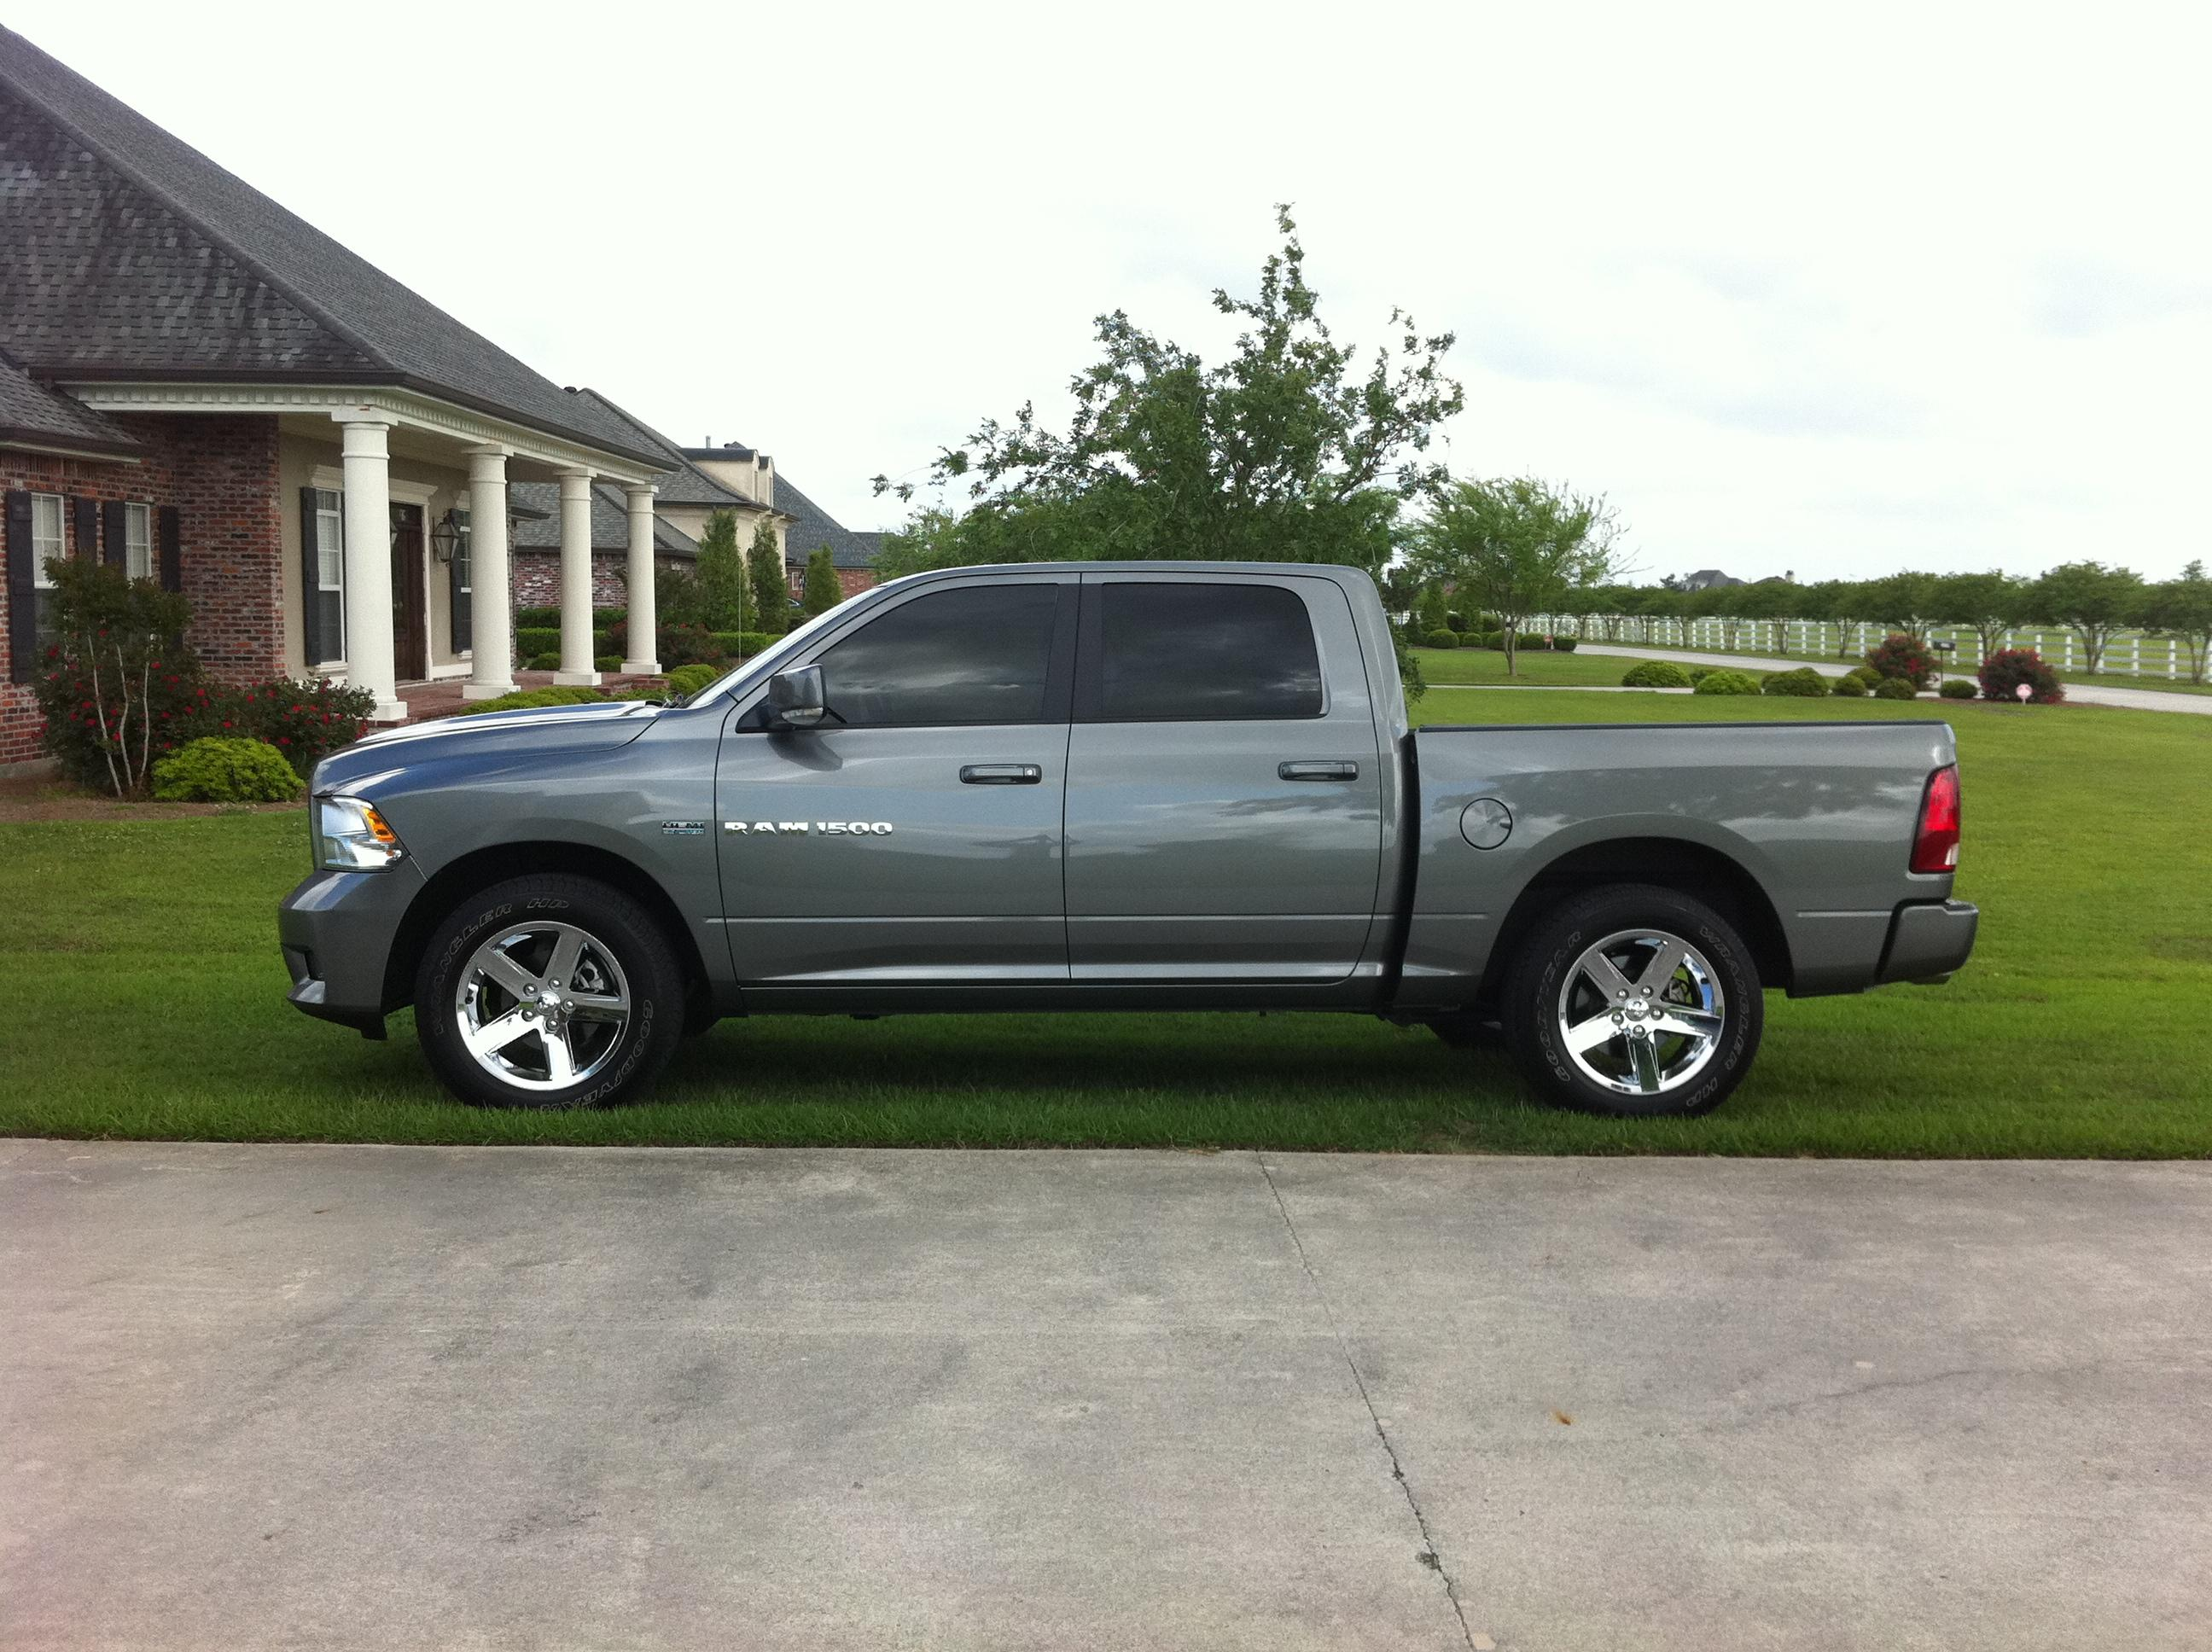 Jordan21210 2011 dodge ram 1500 crew cab specs photos modification info at cardomain - Crew cab dodge ram ...